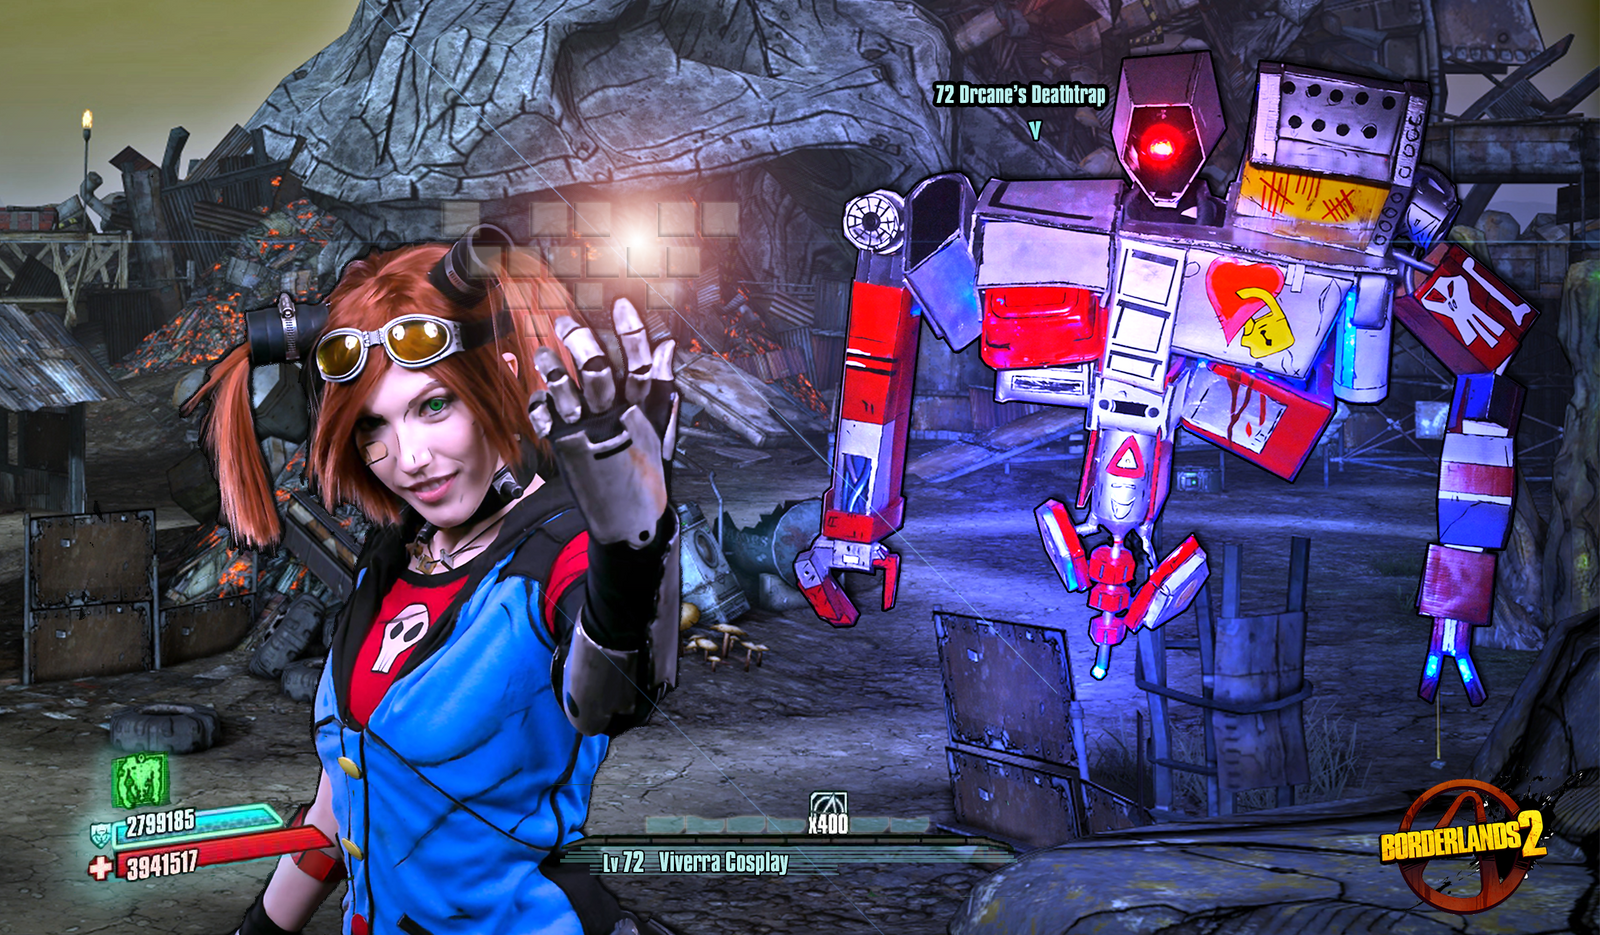 Group of Gaige And Deathtrap Cosplay